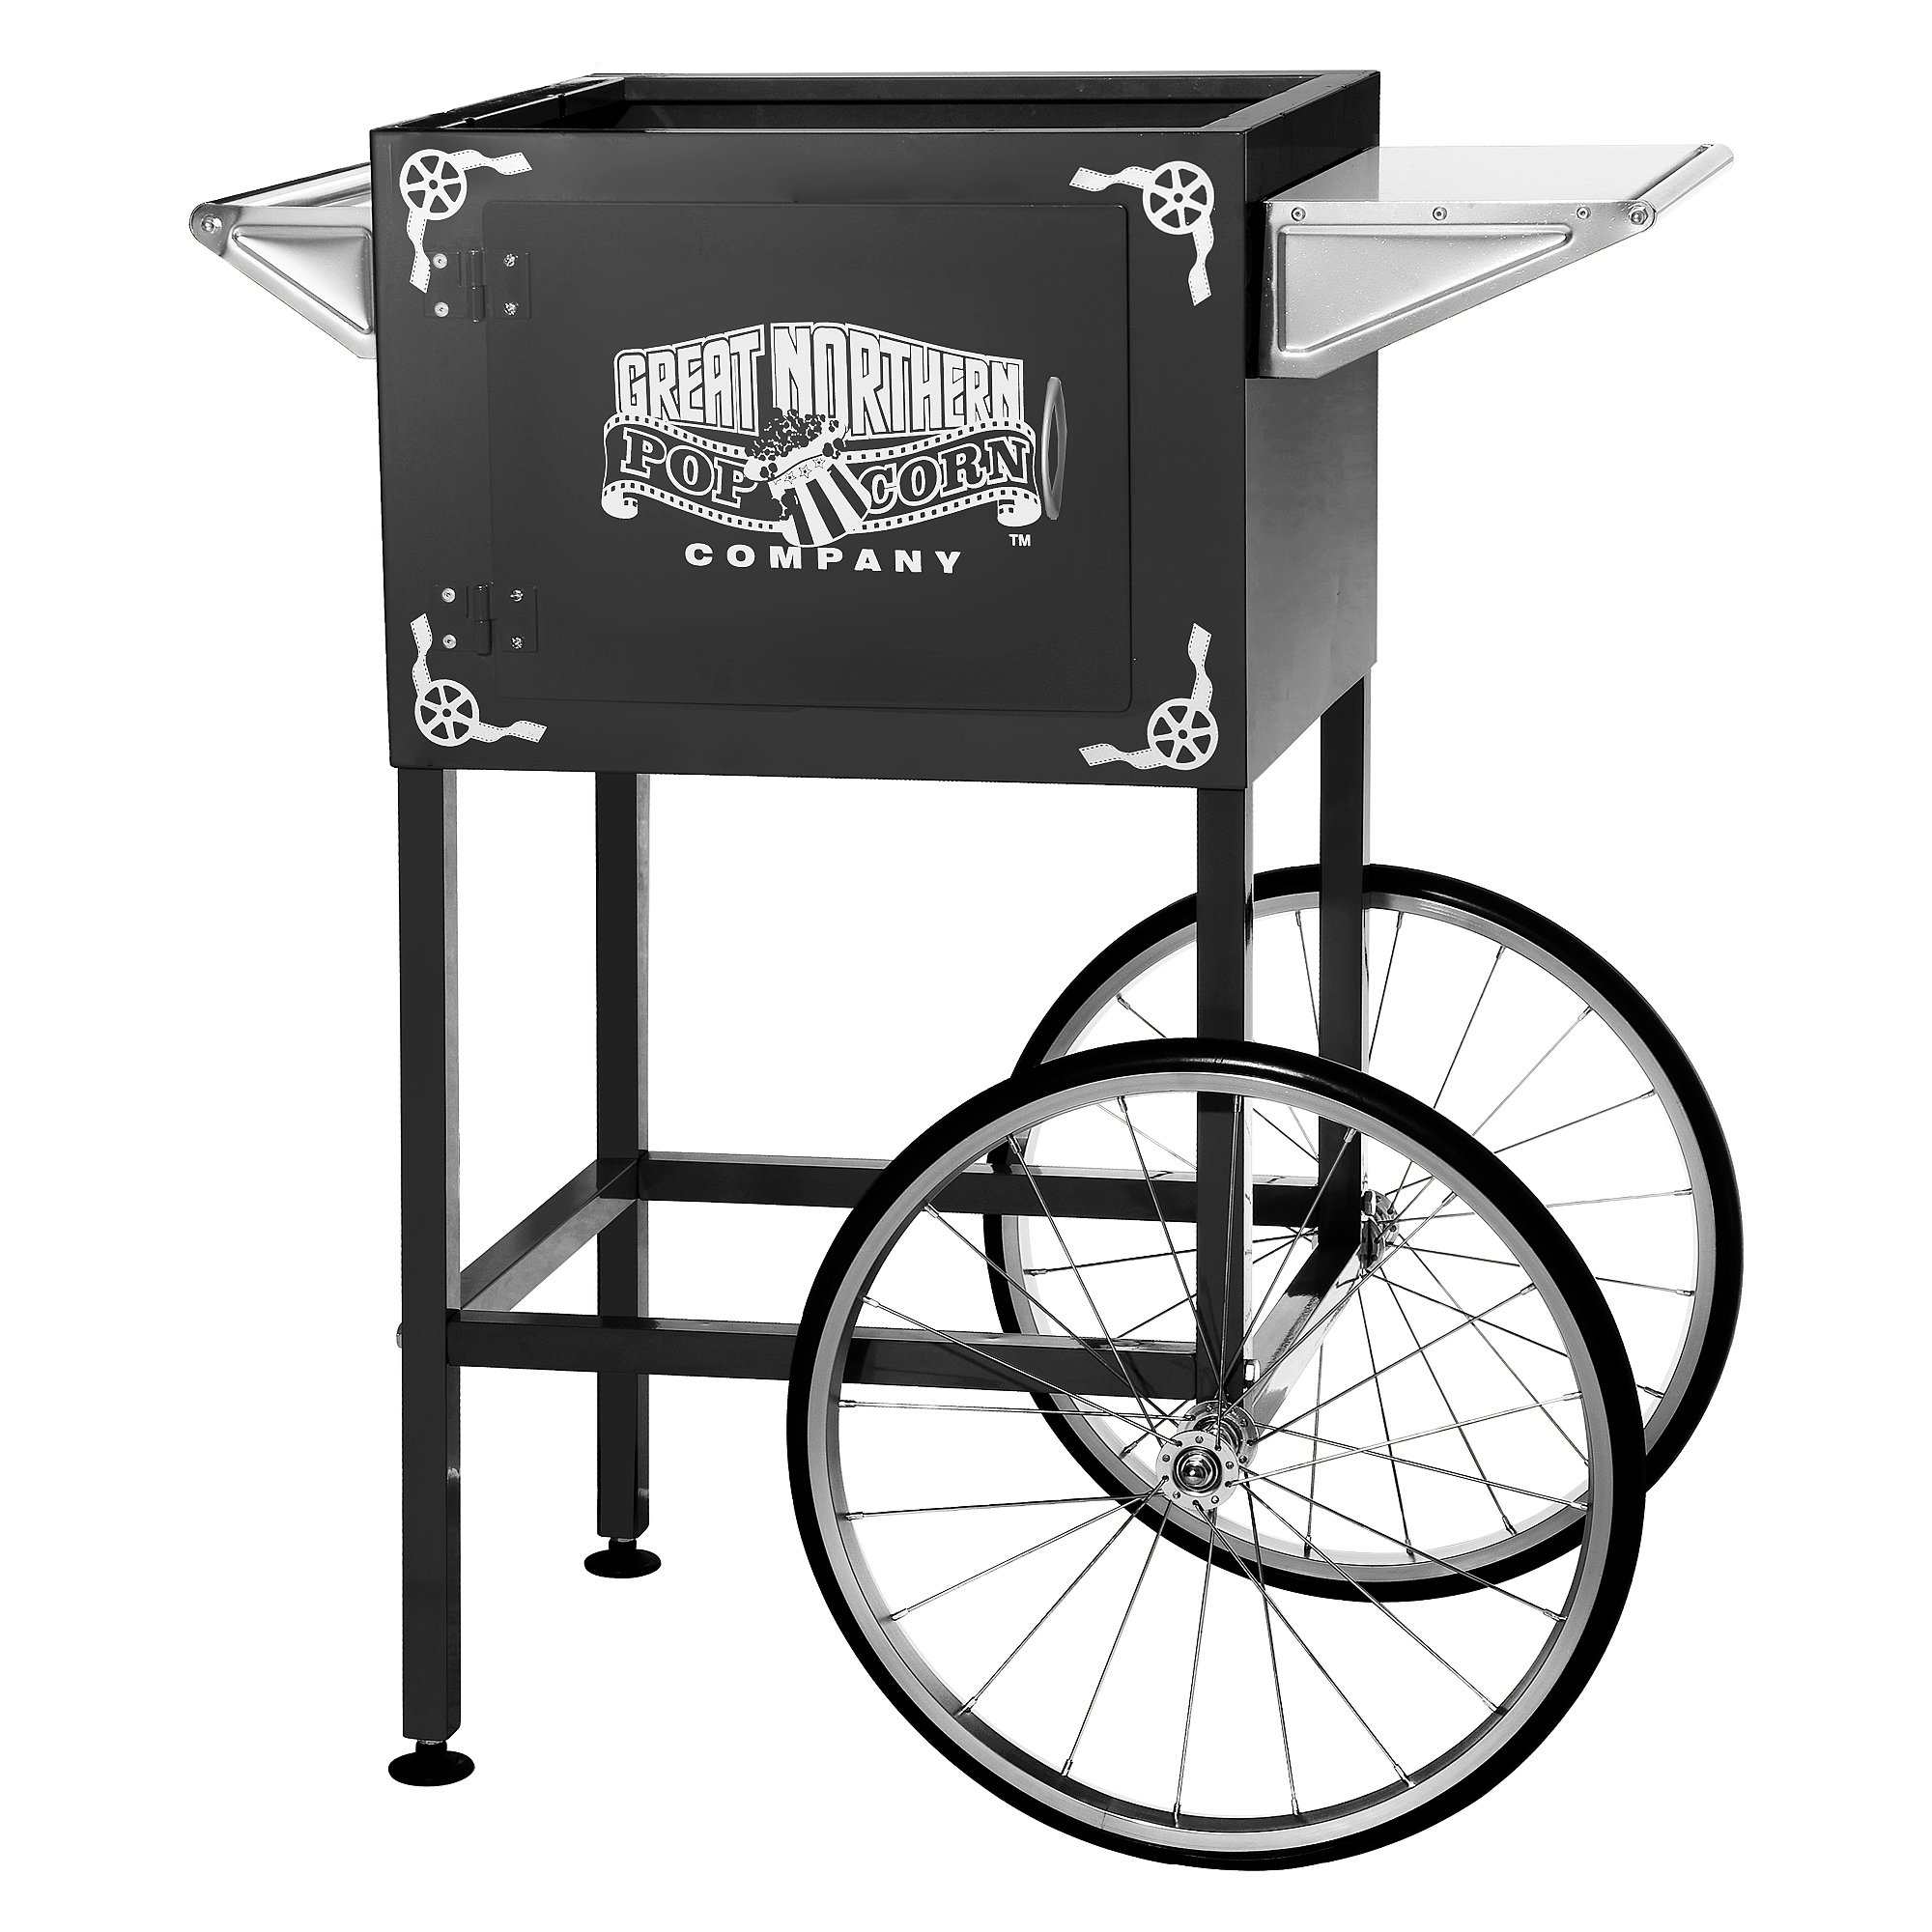 6401 Black Replacement Cart for Larger Lincoln Style Great Northern Popcorn Machines by Great Northern Popcorn Company